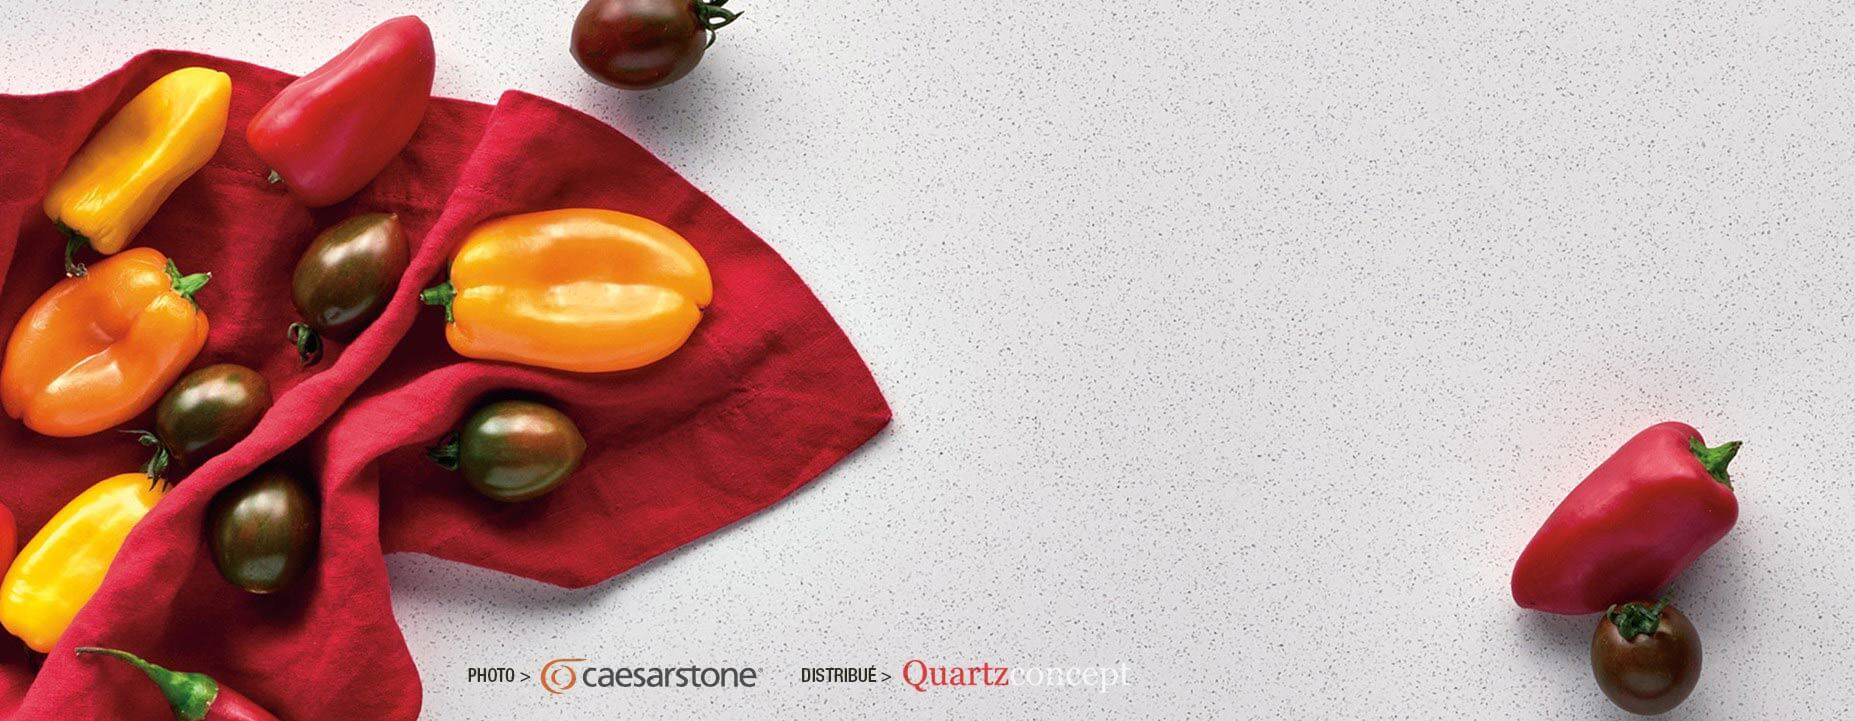 Quartz Caesarstone couleur 6011 intense white